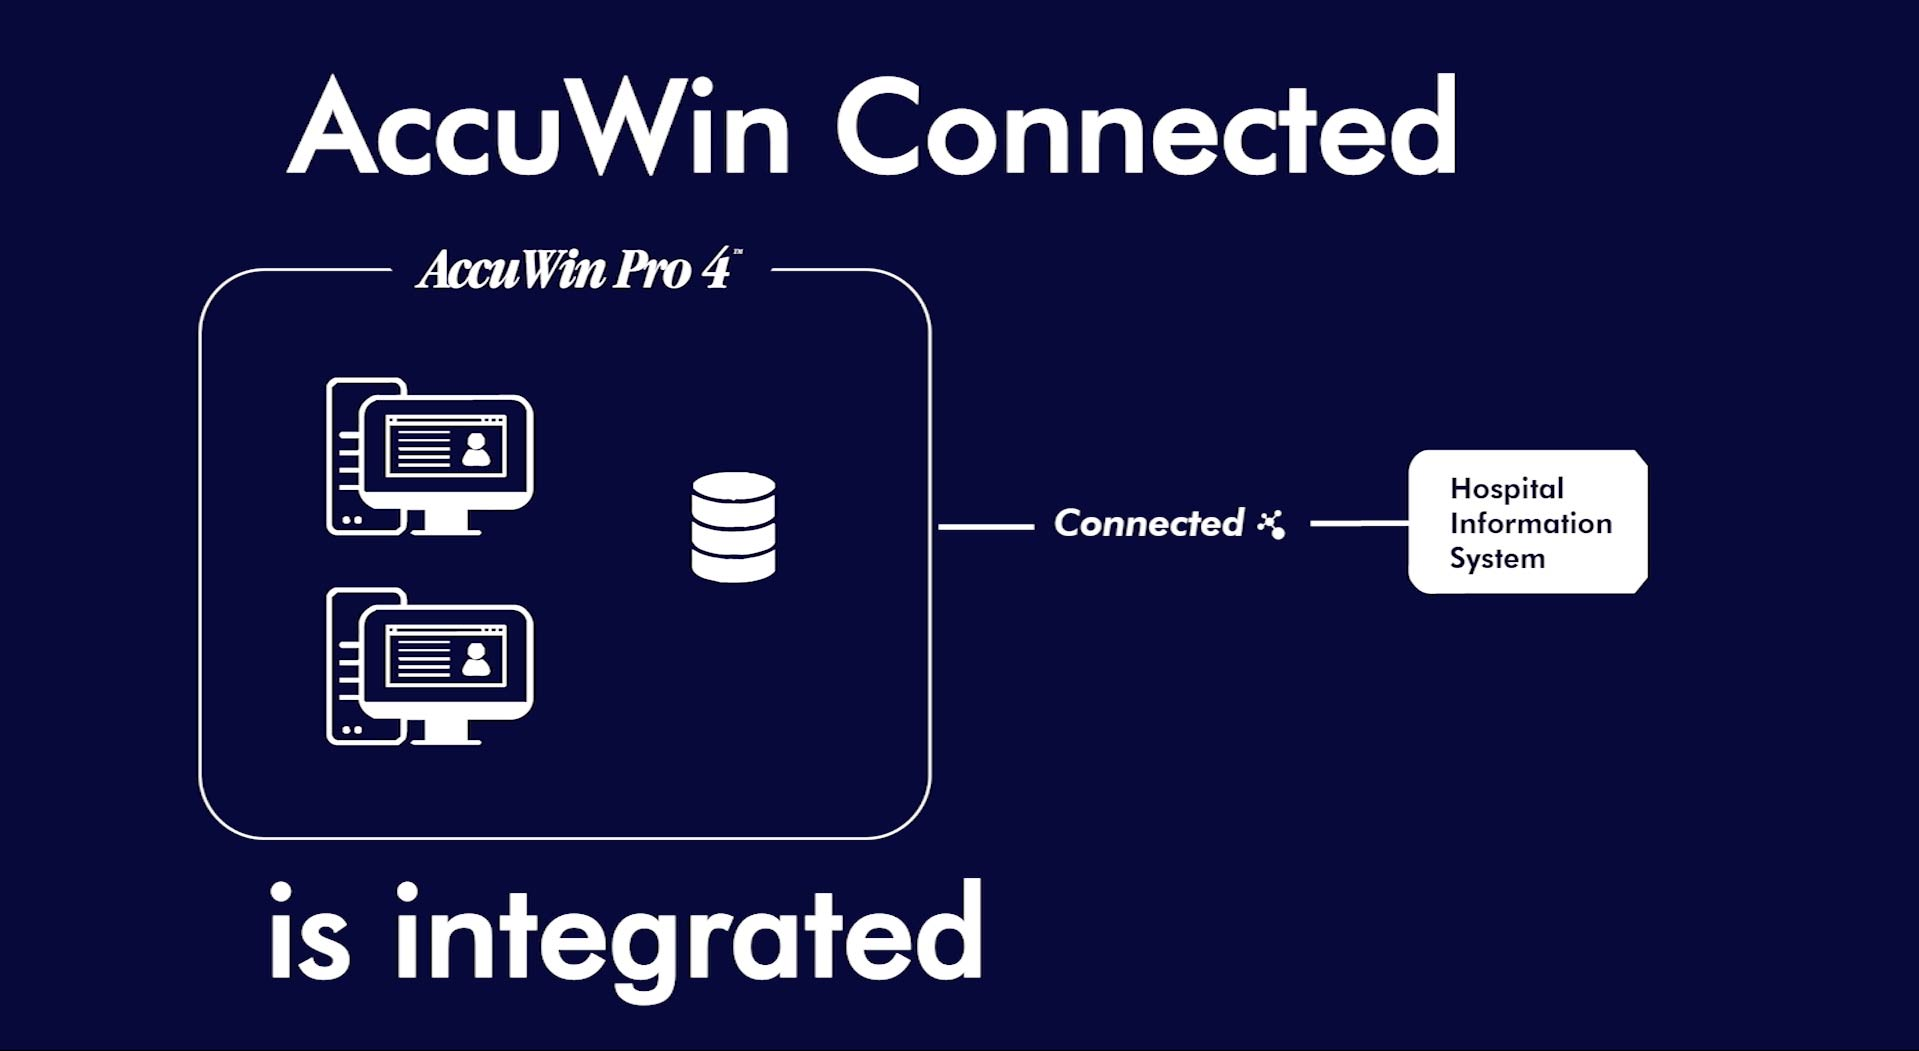 AccuWin Connected is integrated